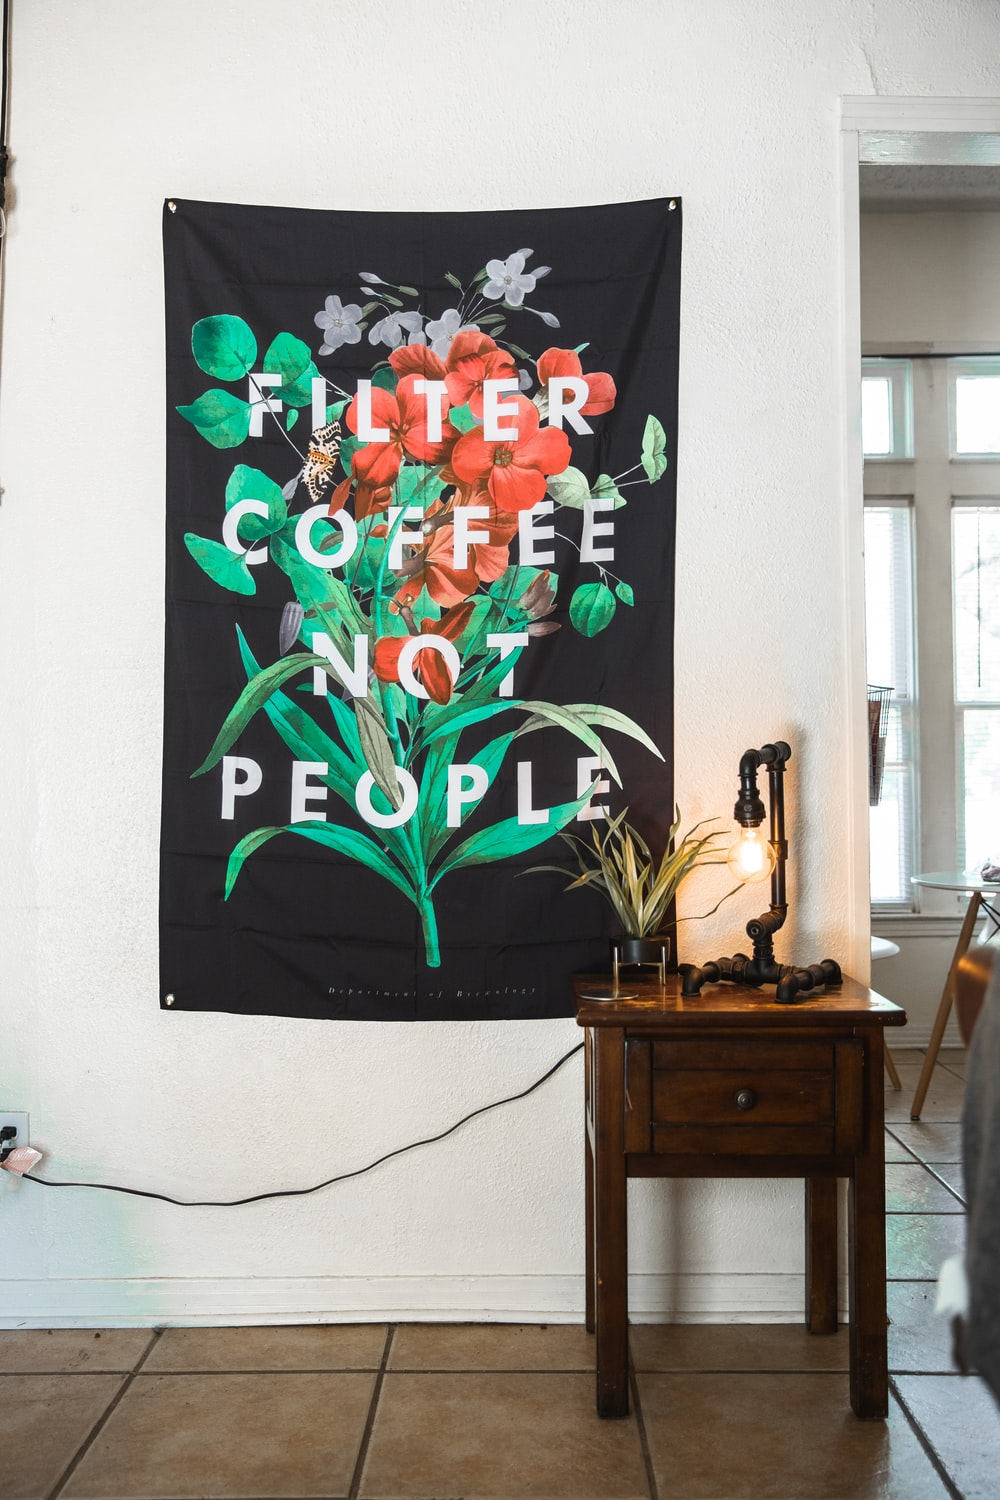 multicolored floral banner on wall